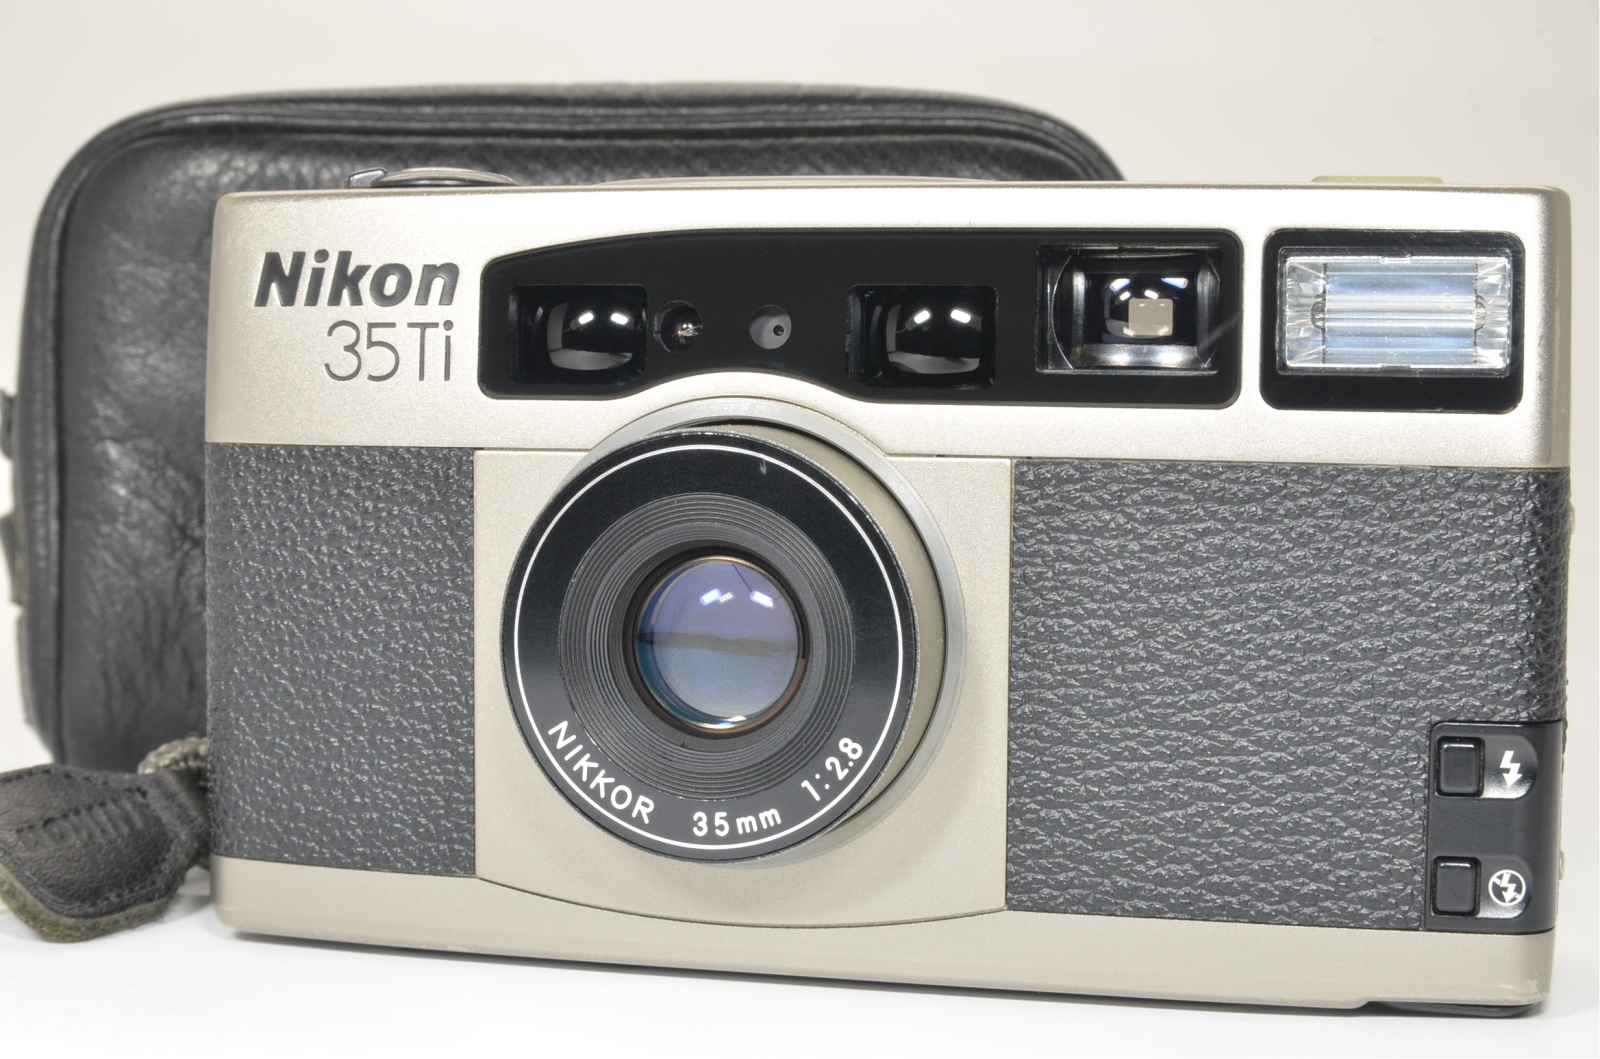 nikon 35ti p&s film camera lens 35mm f2.8 from japan shooting tested